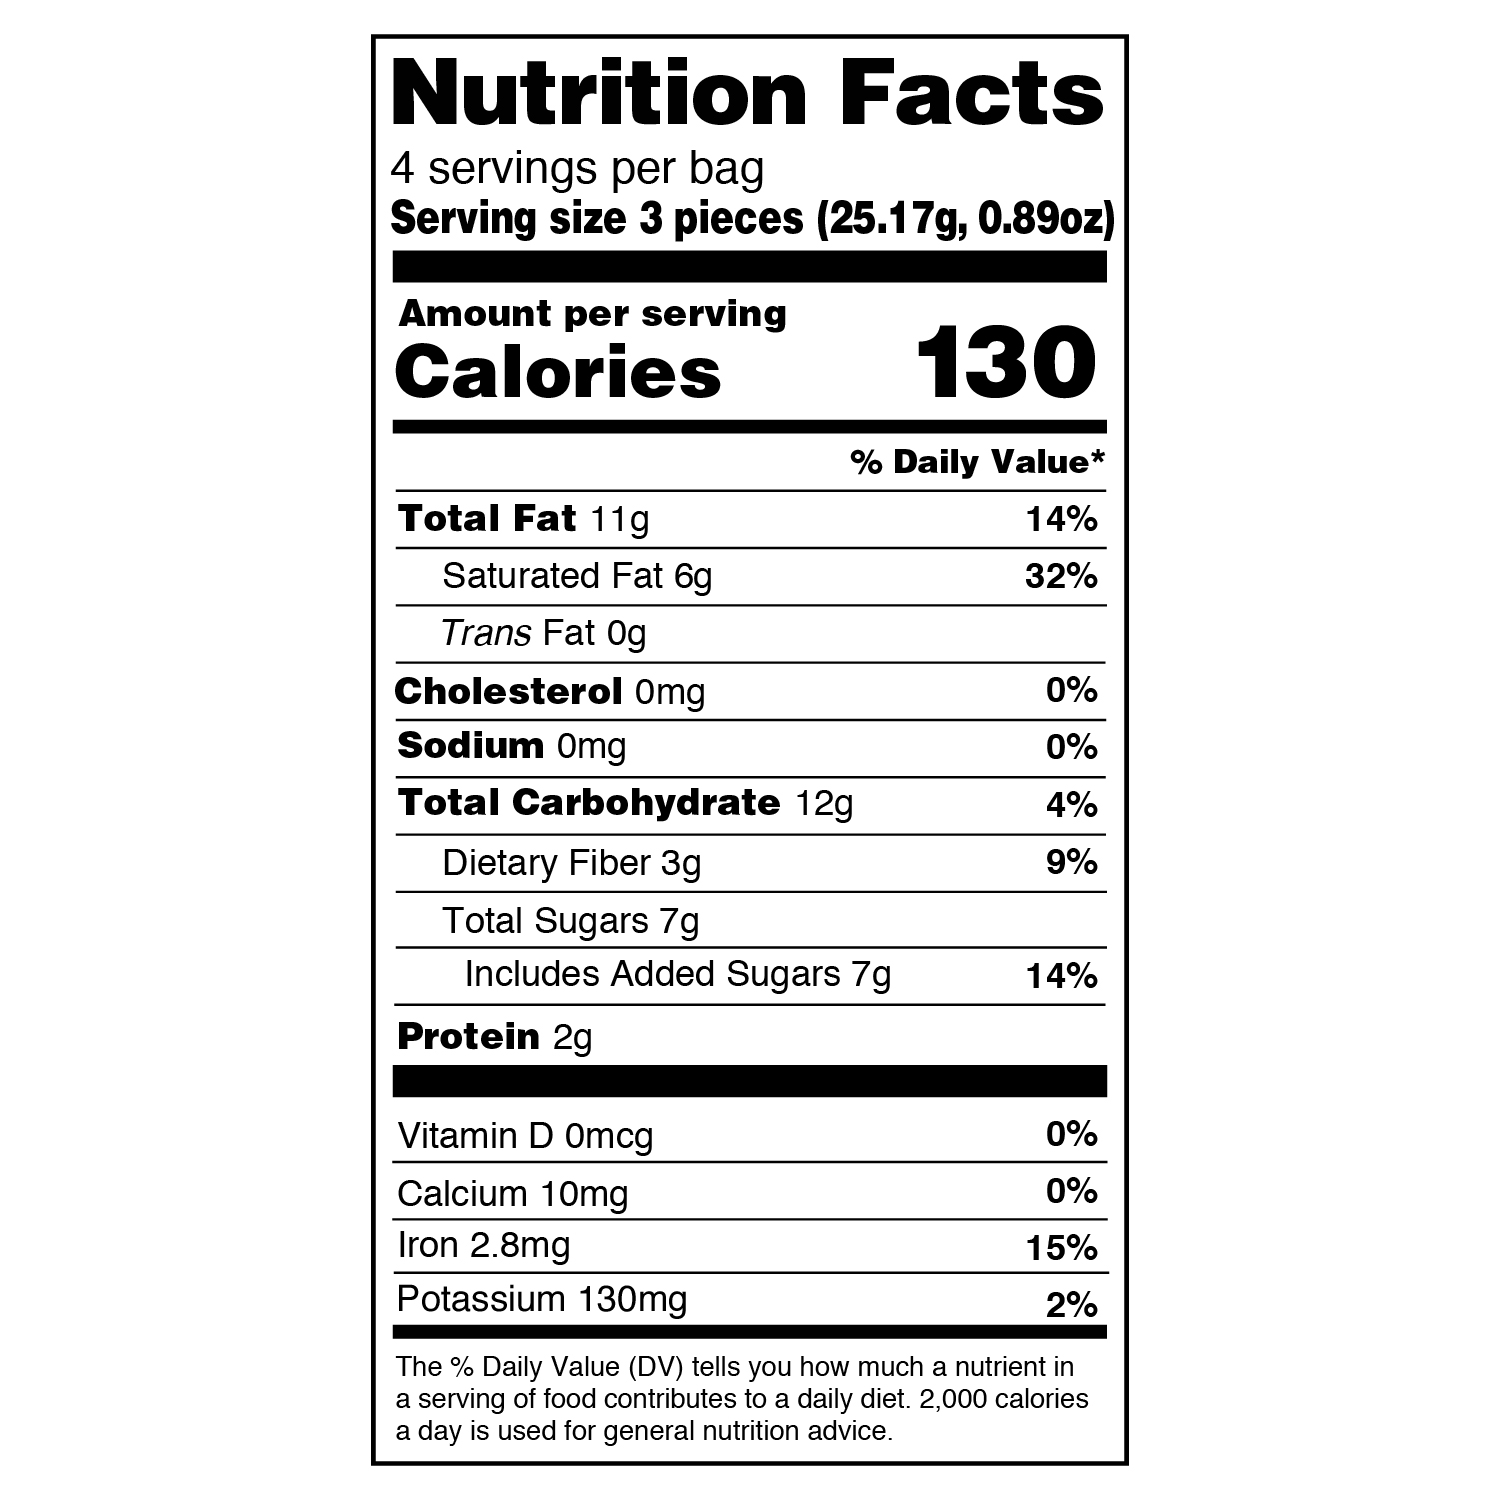 original 3.55 oz nutritional information